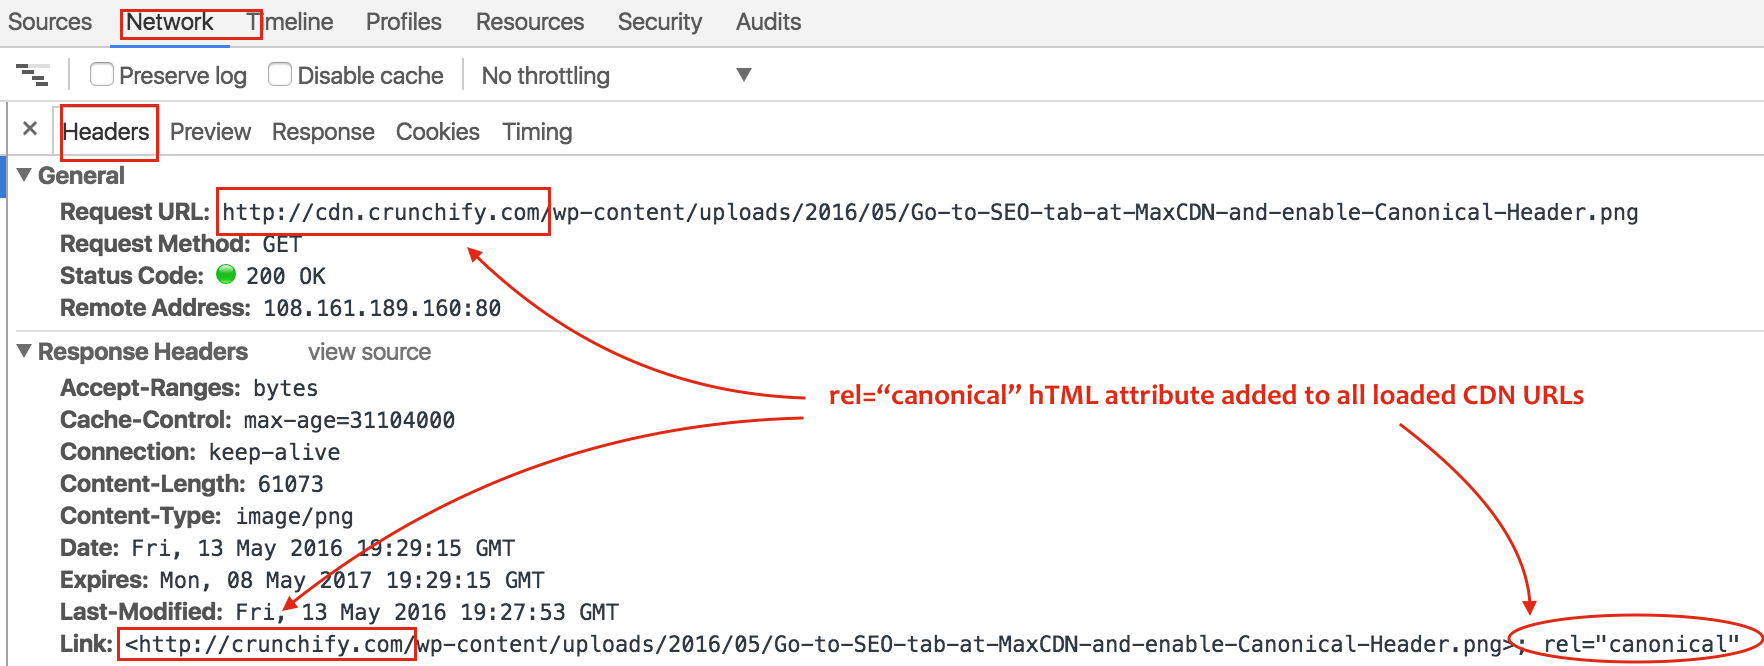 rel=canonical HTML attribute added to all loaded CDN URLs